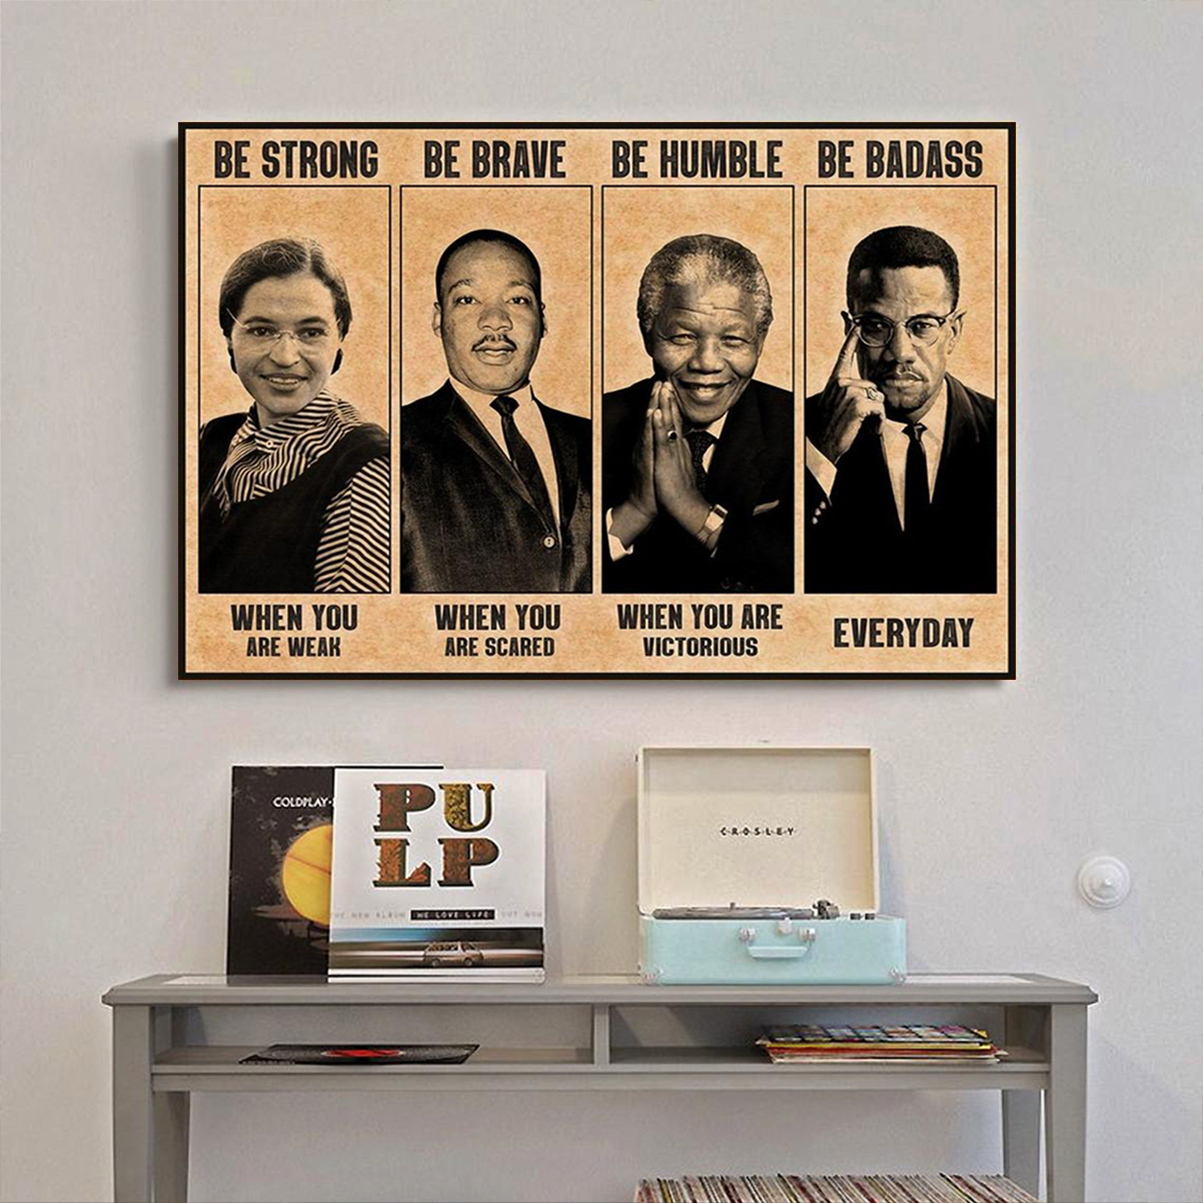 The civil rights leaders be strong be brave be humble be badass poster A2